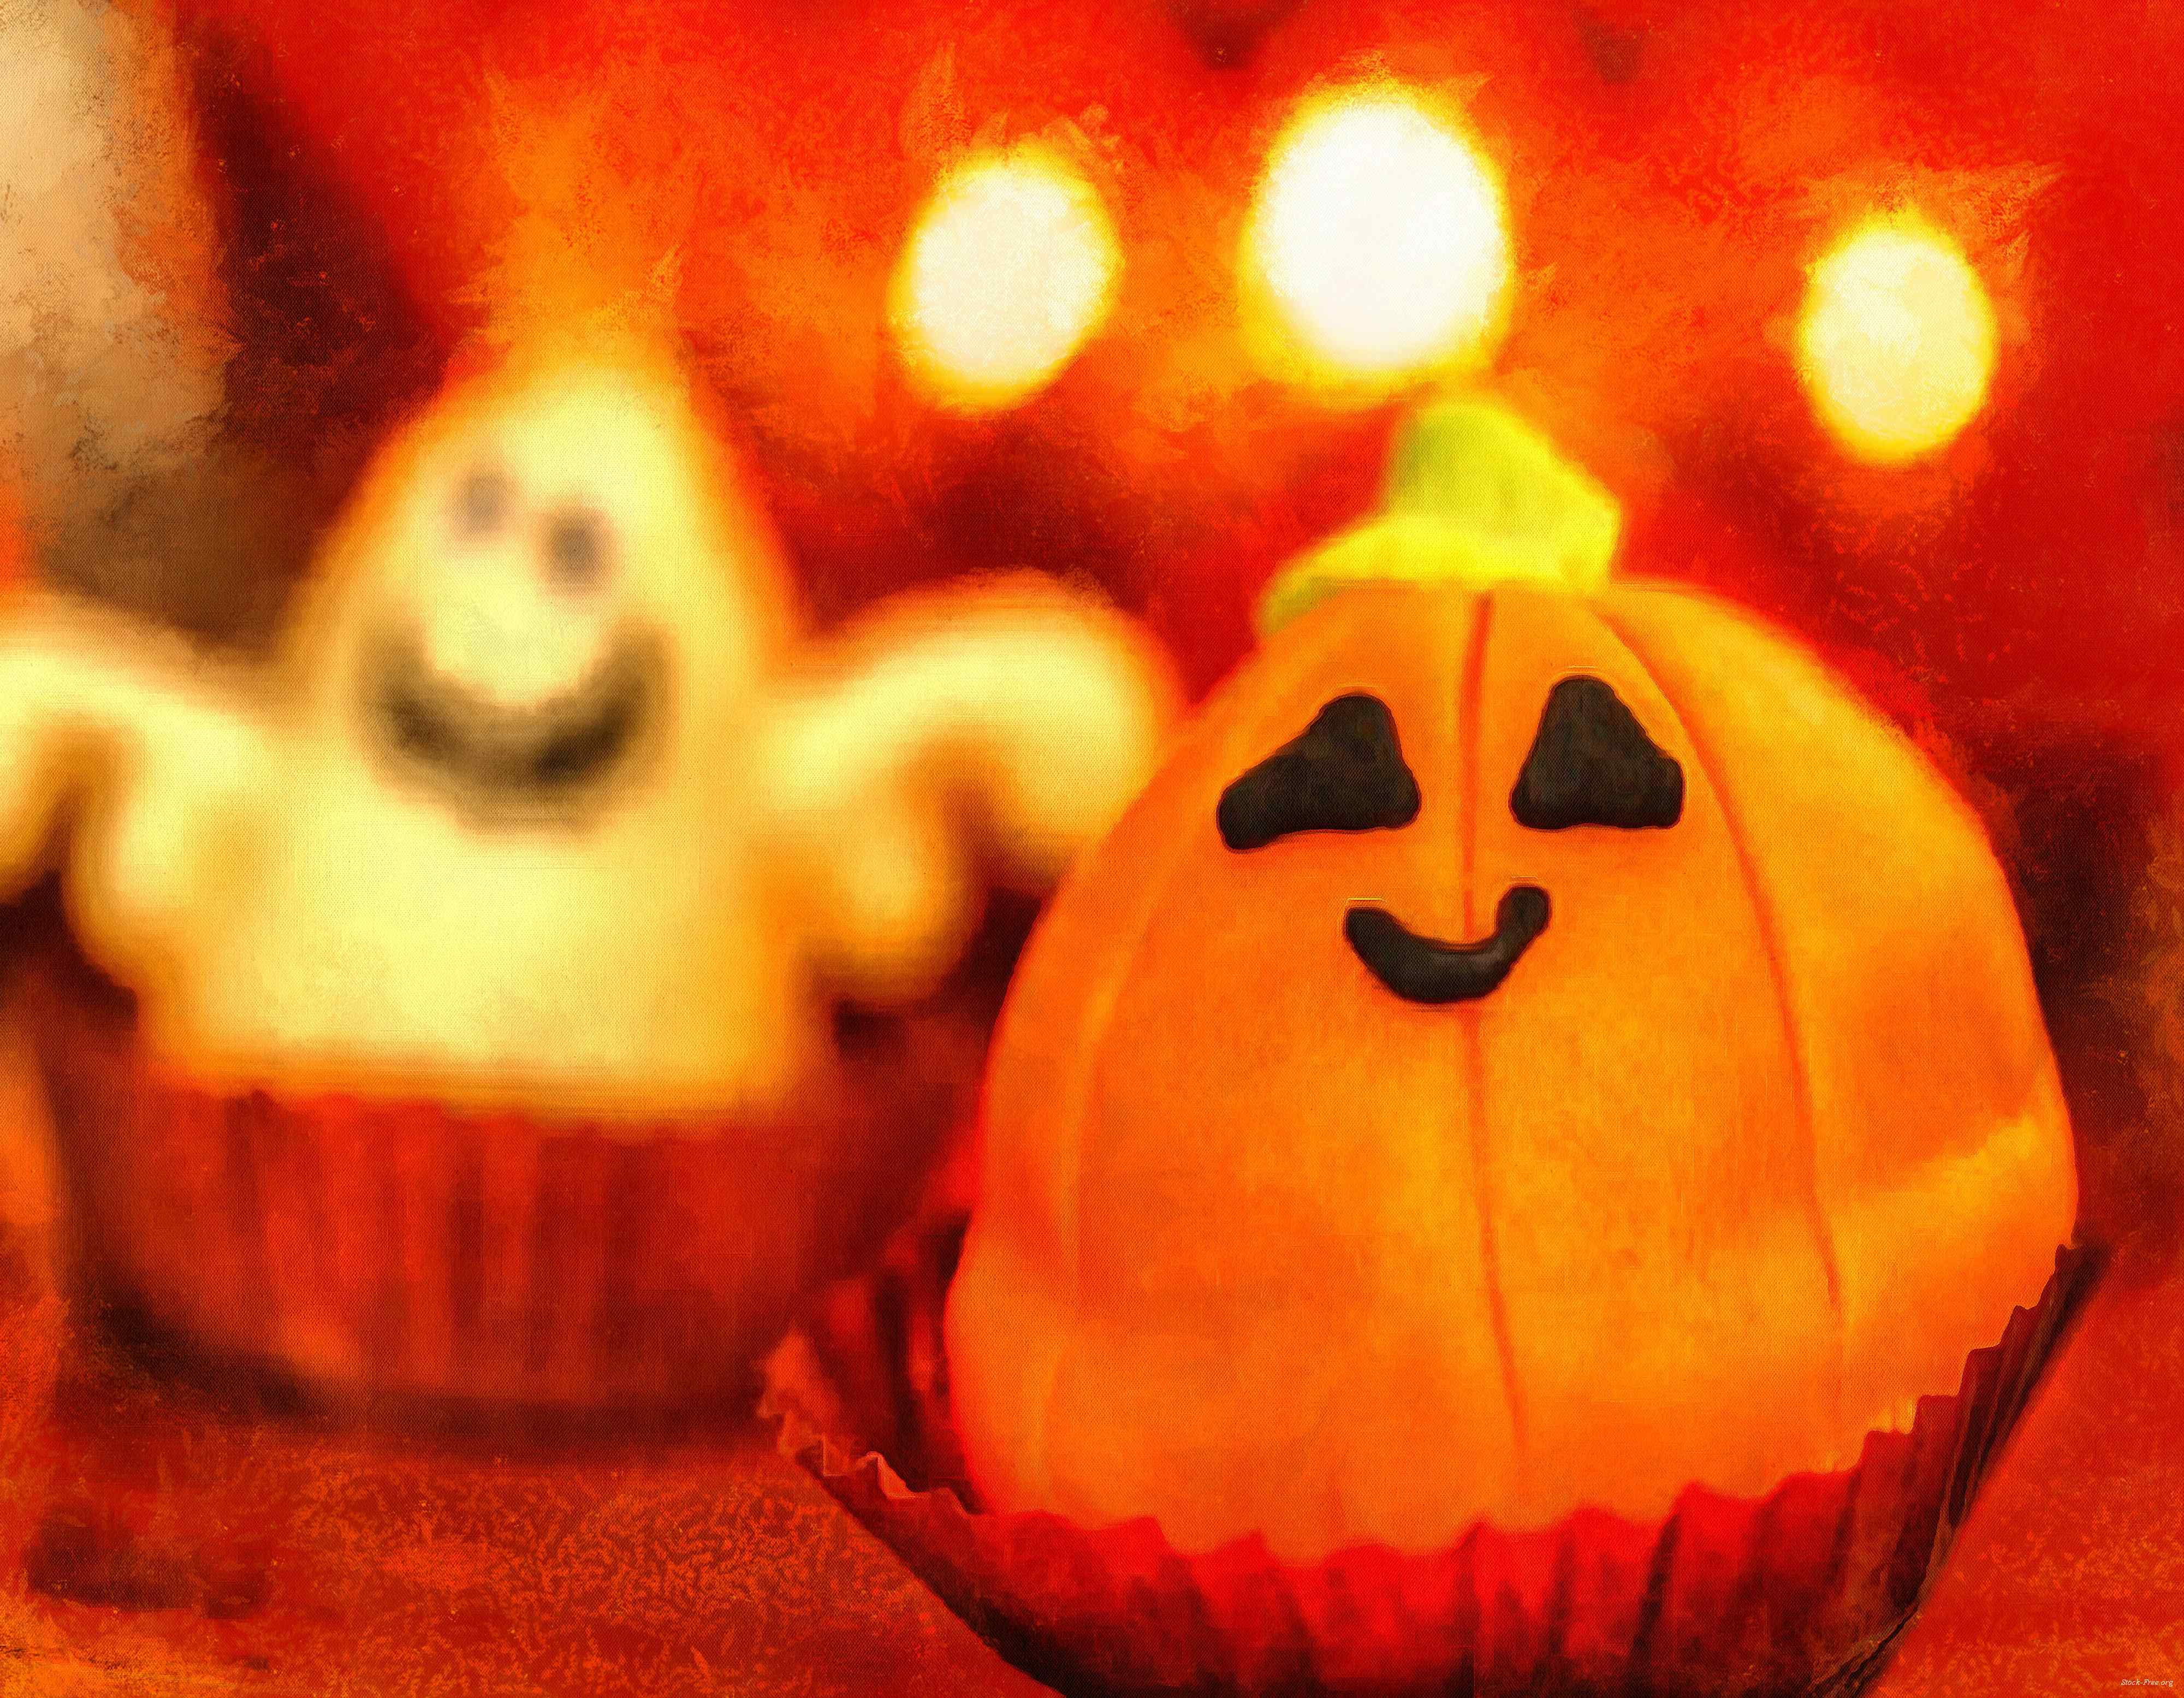 http://www.stock-free.org/images/Halloween-Stock-Free-Image-18052015-image-442.jpg